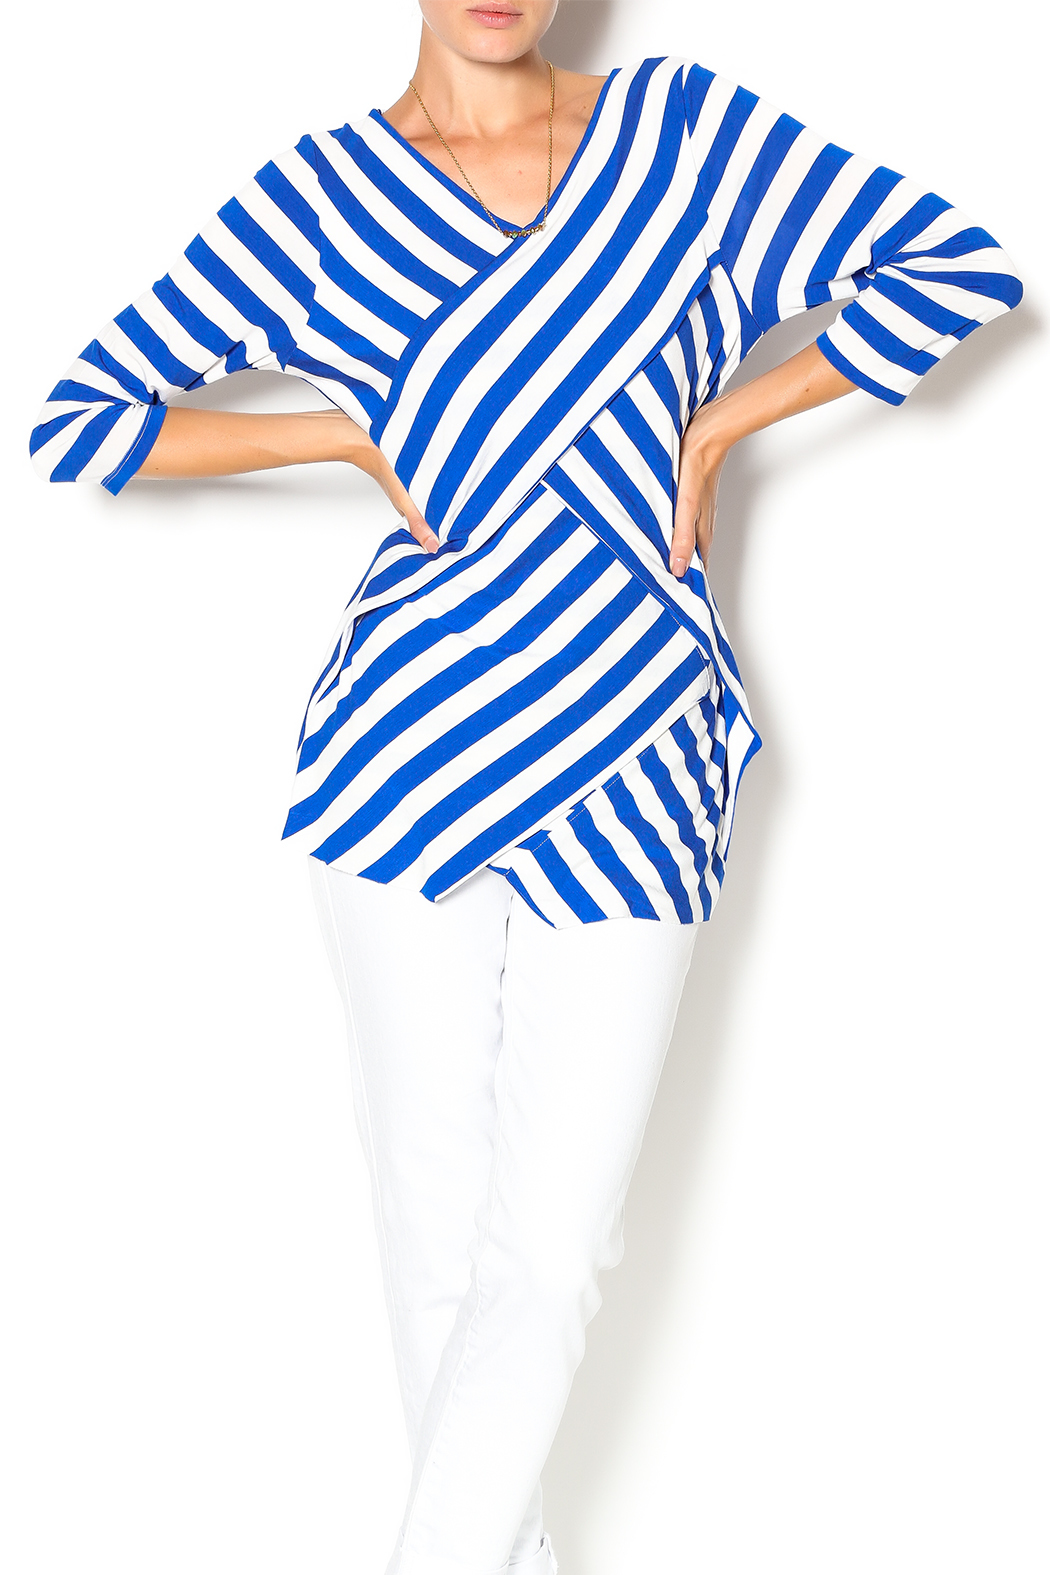 Vecceli Italy Striped Tunic - Main Image